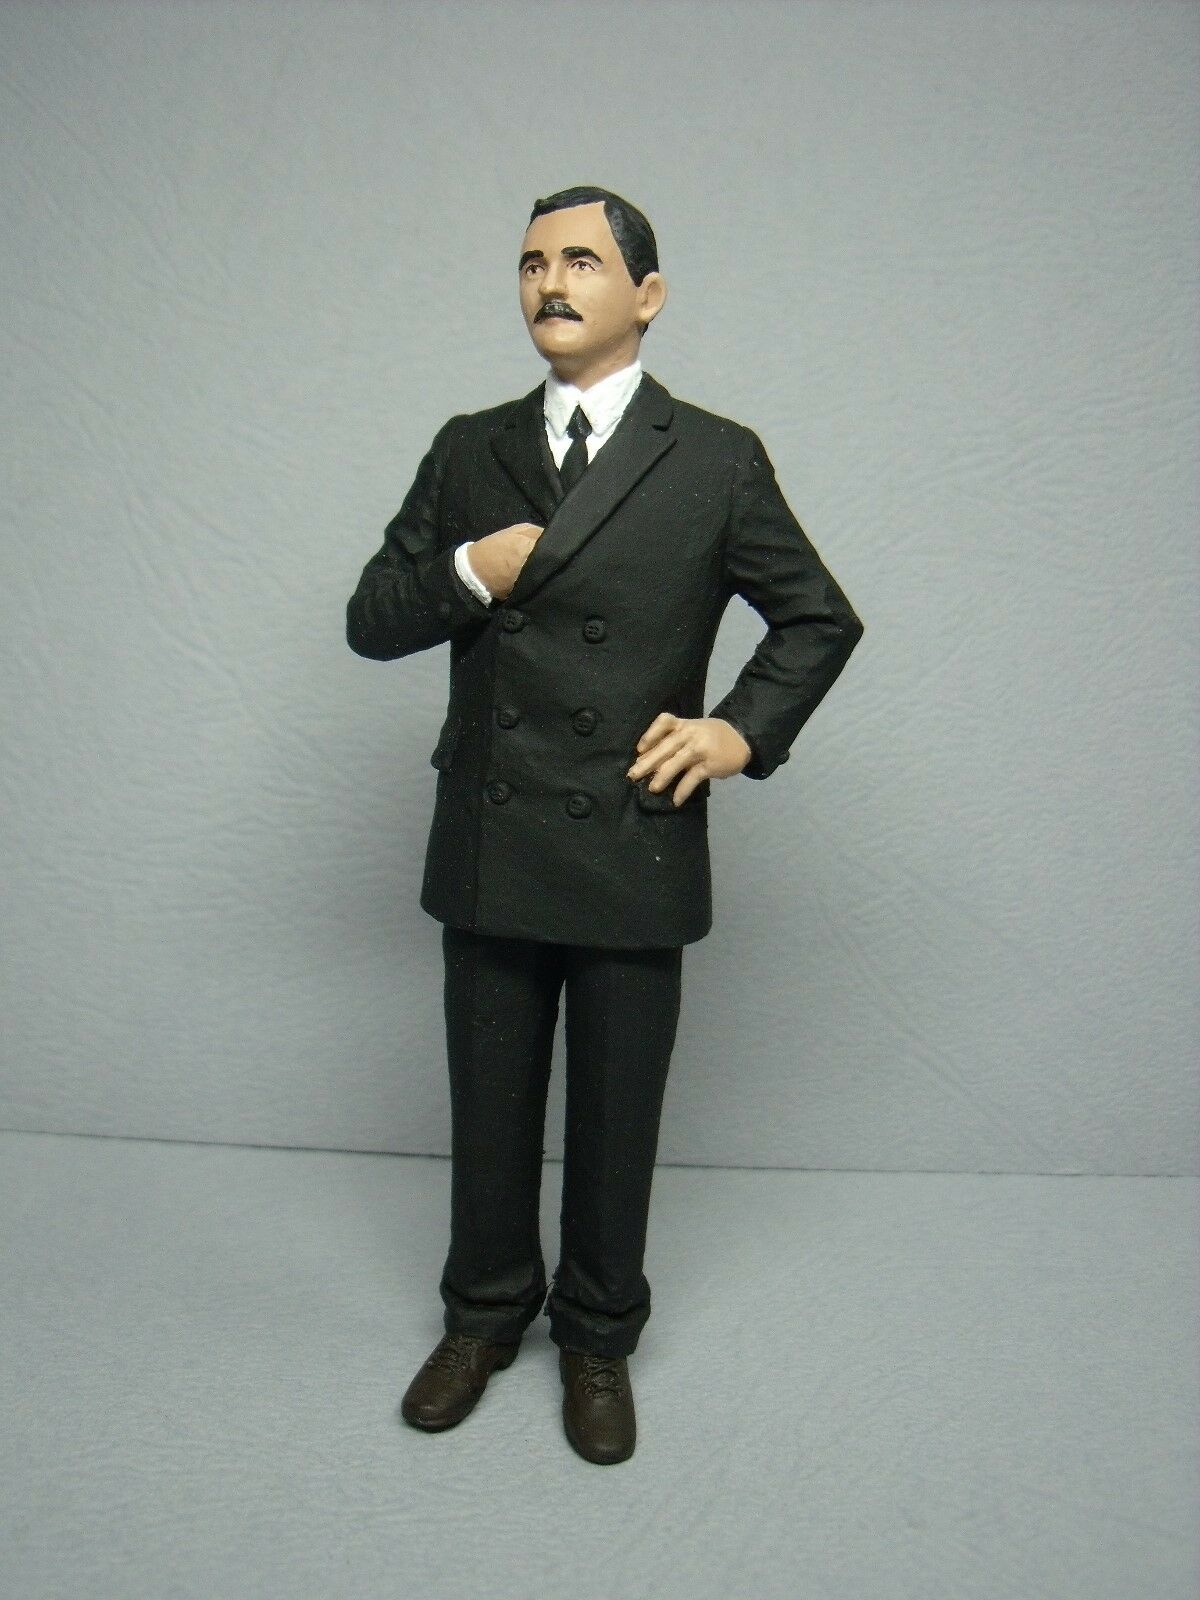 1 18  FIGURE  KARL  RAPP  PAINTED  BY  VROOM  FOR  CMC  MINICHAMPS